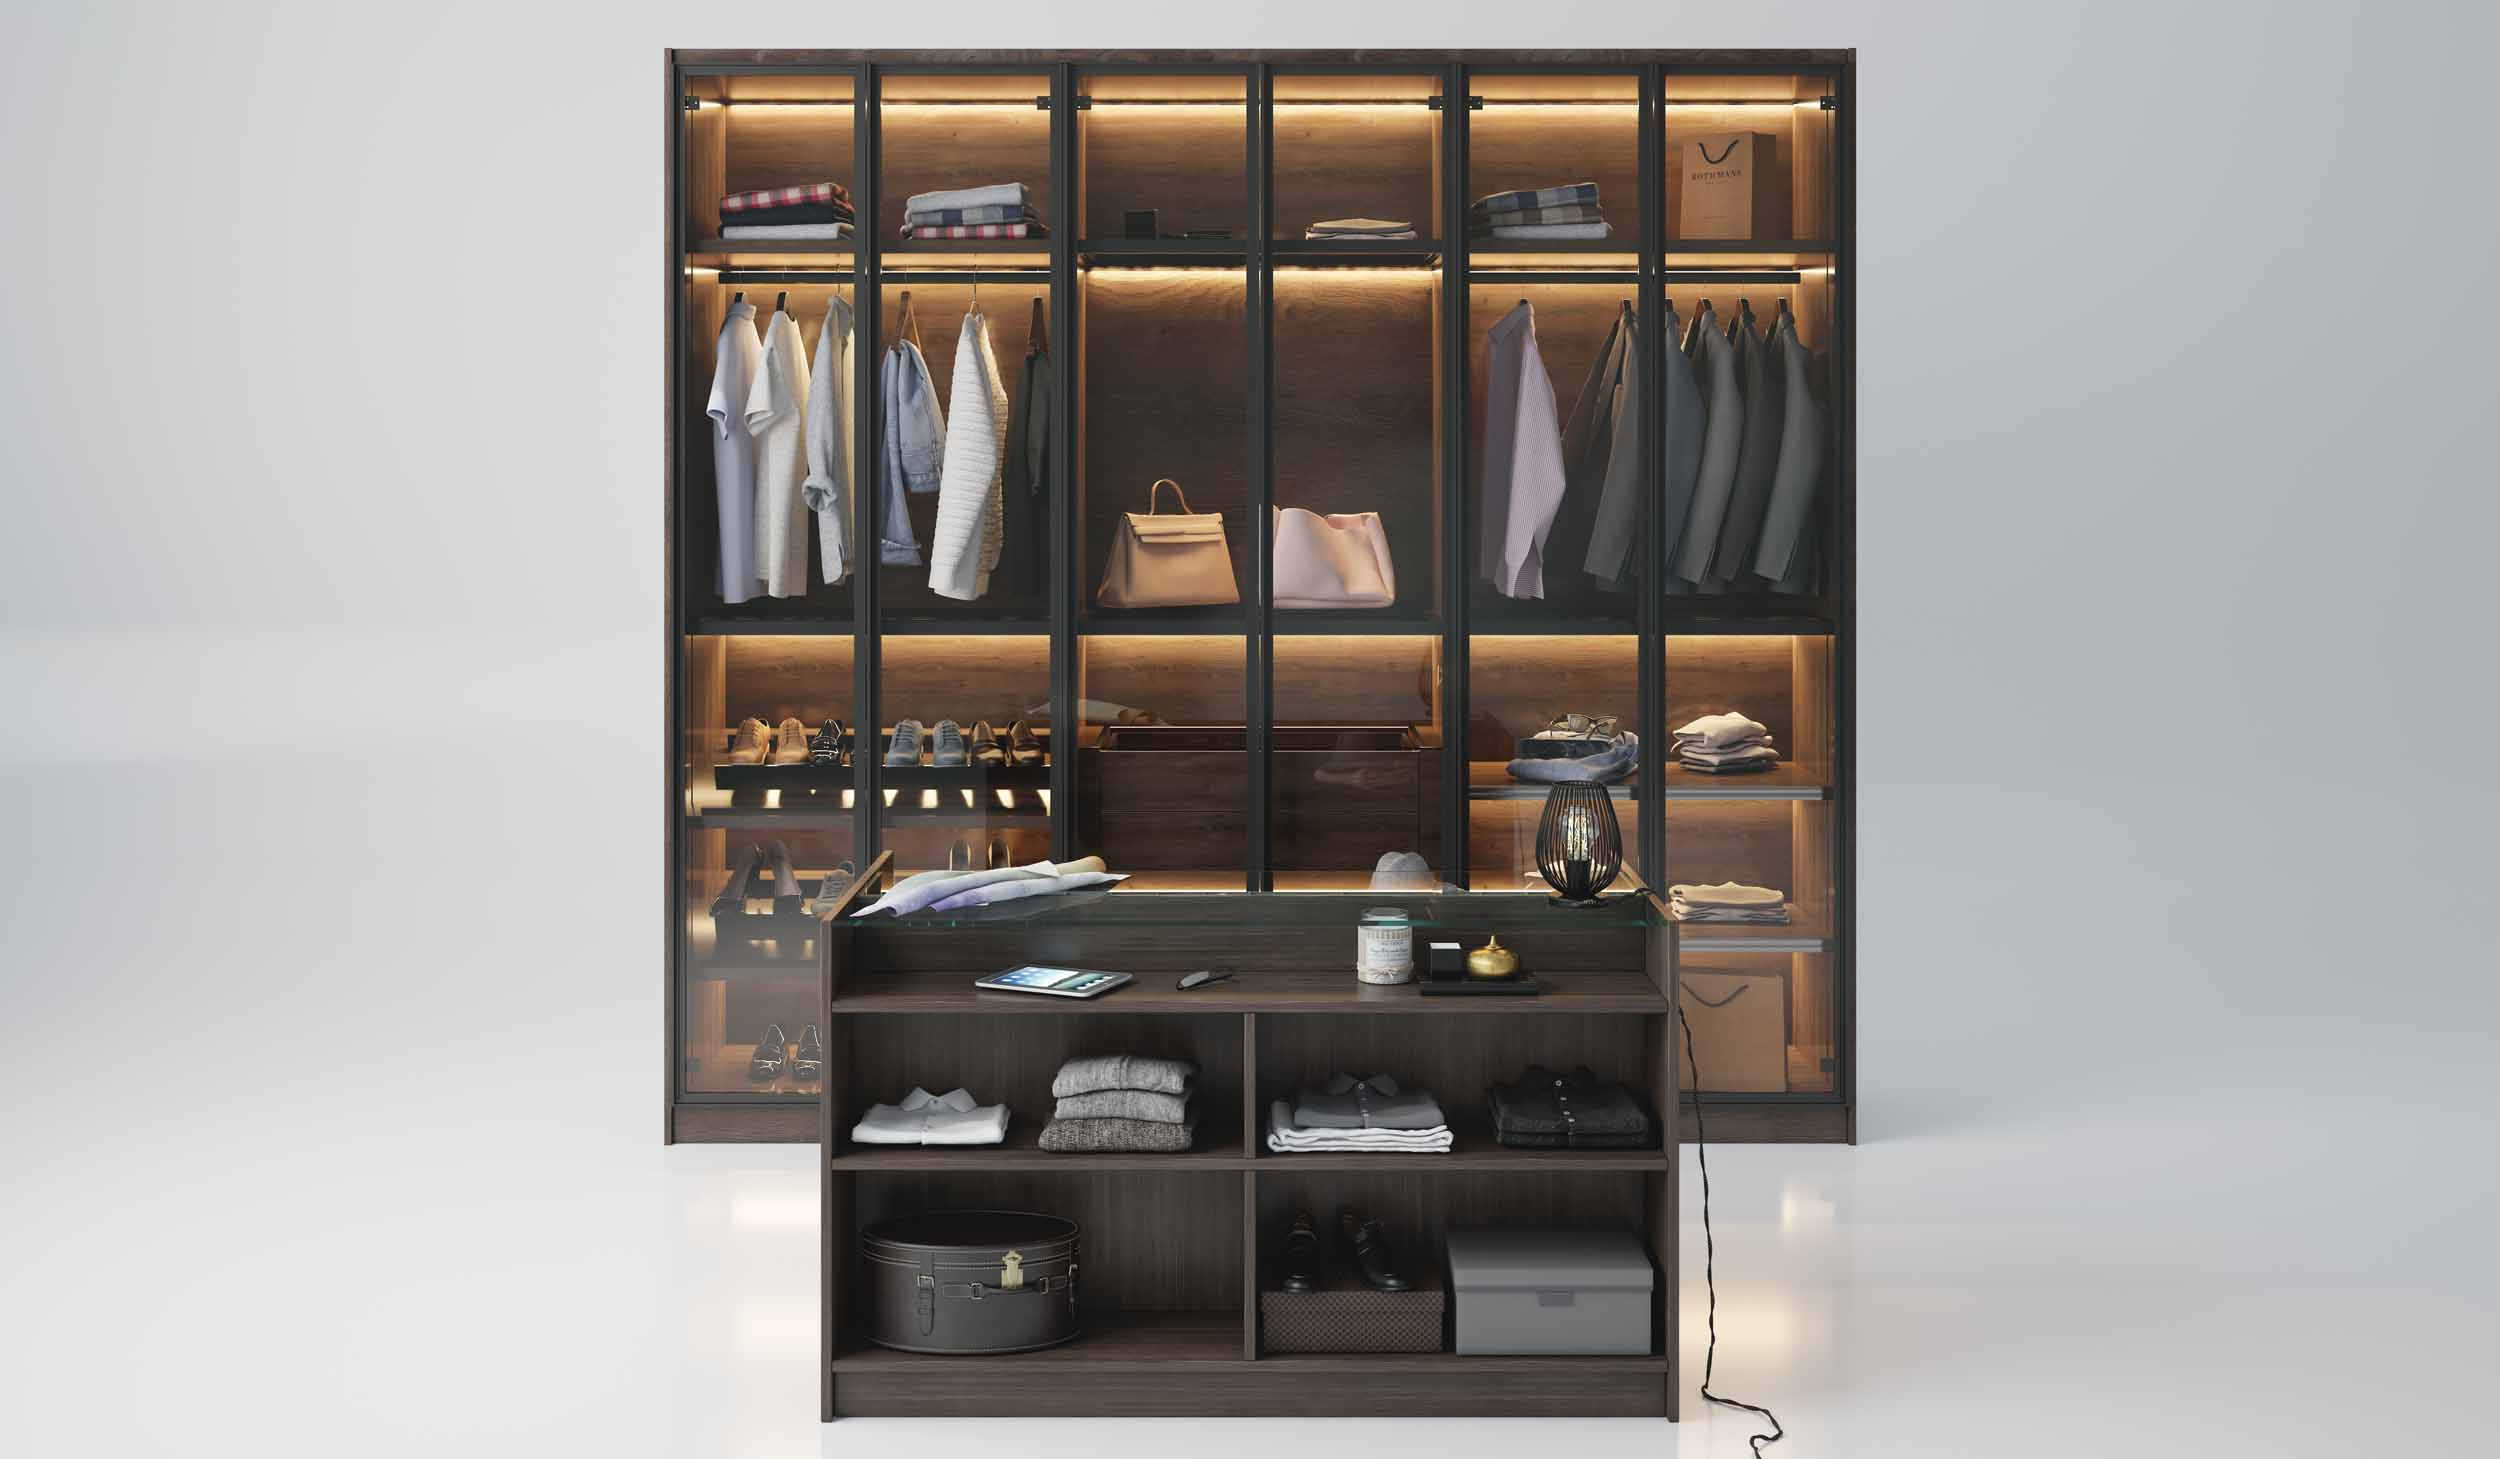 Linear Glass Fitted Wardrobe Doors Wood Grain Finish With Island and Close Up